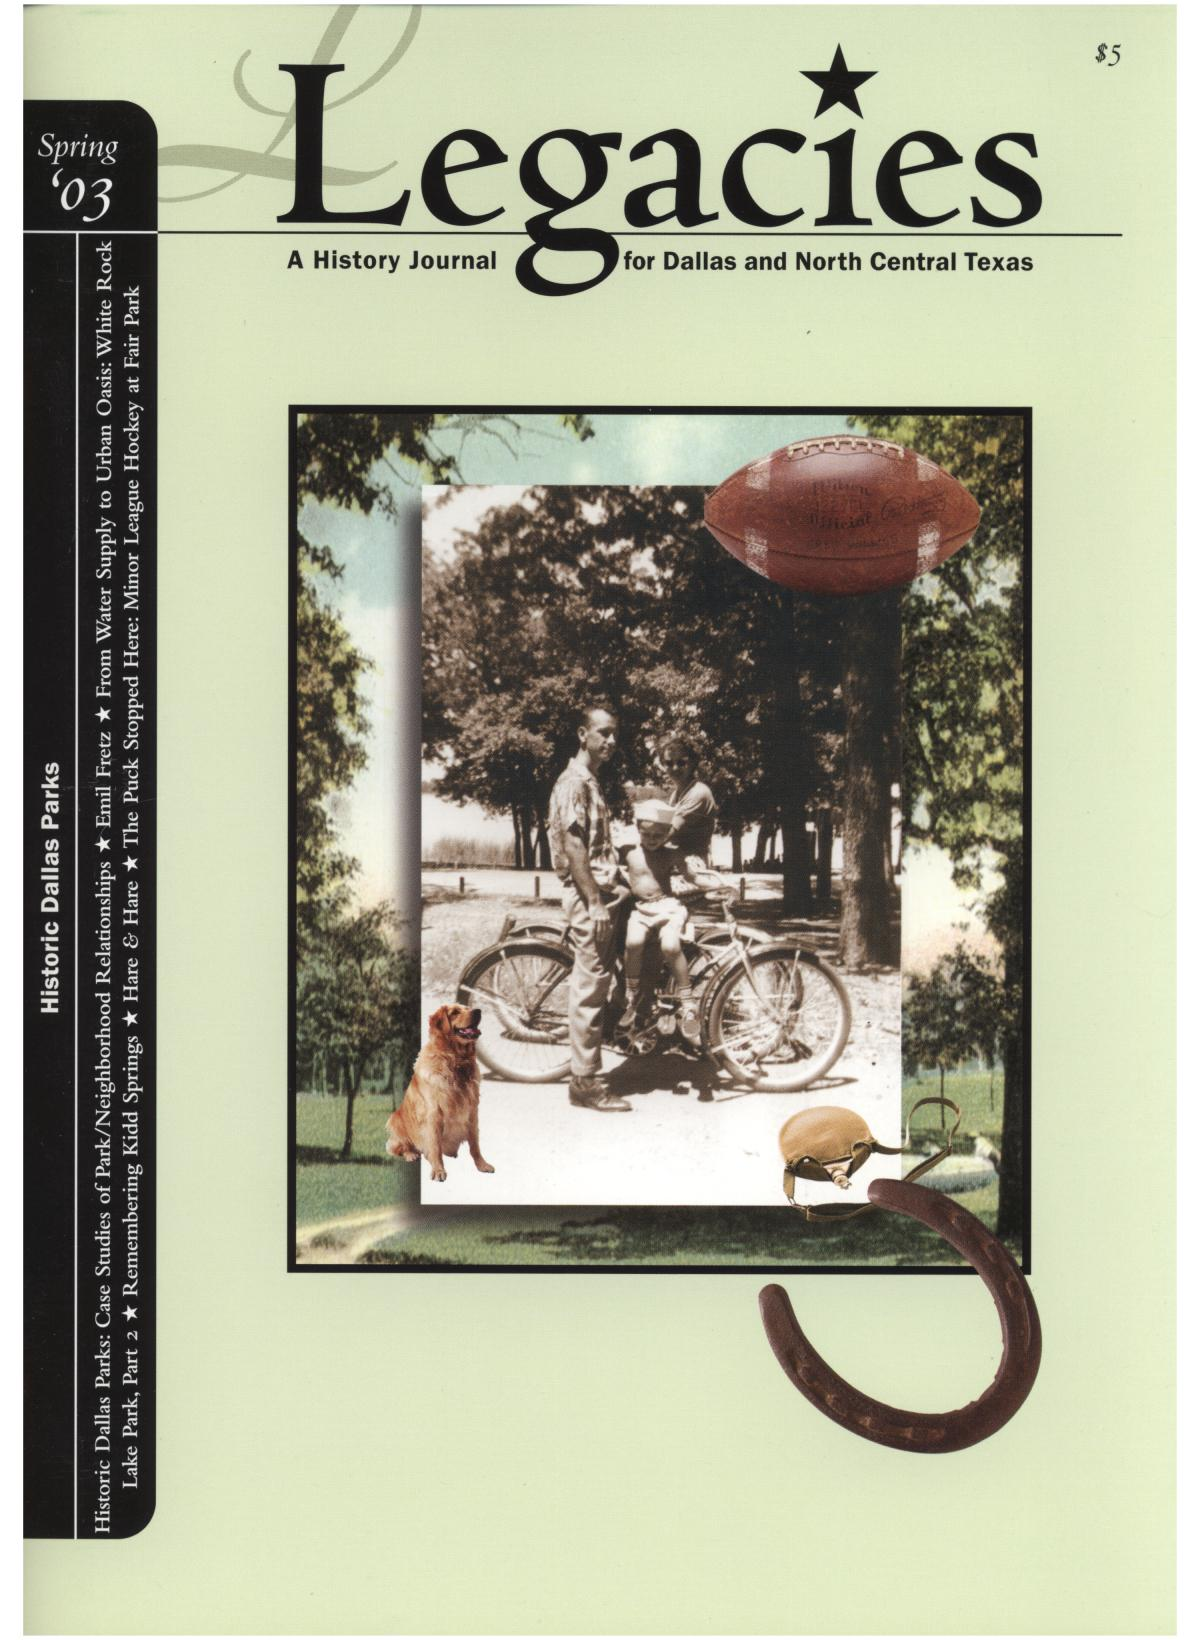 Legacies: A History Journal for Dallas and North Central Texas, Volume 15, Number 01, Spring, 2003                                                                                                      Front Cover